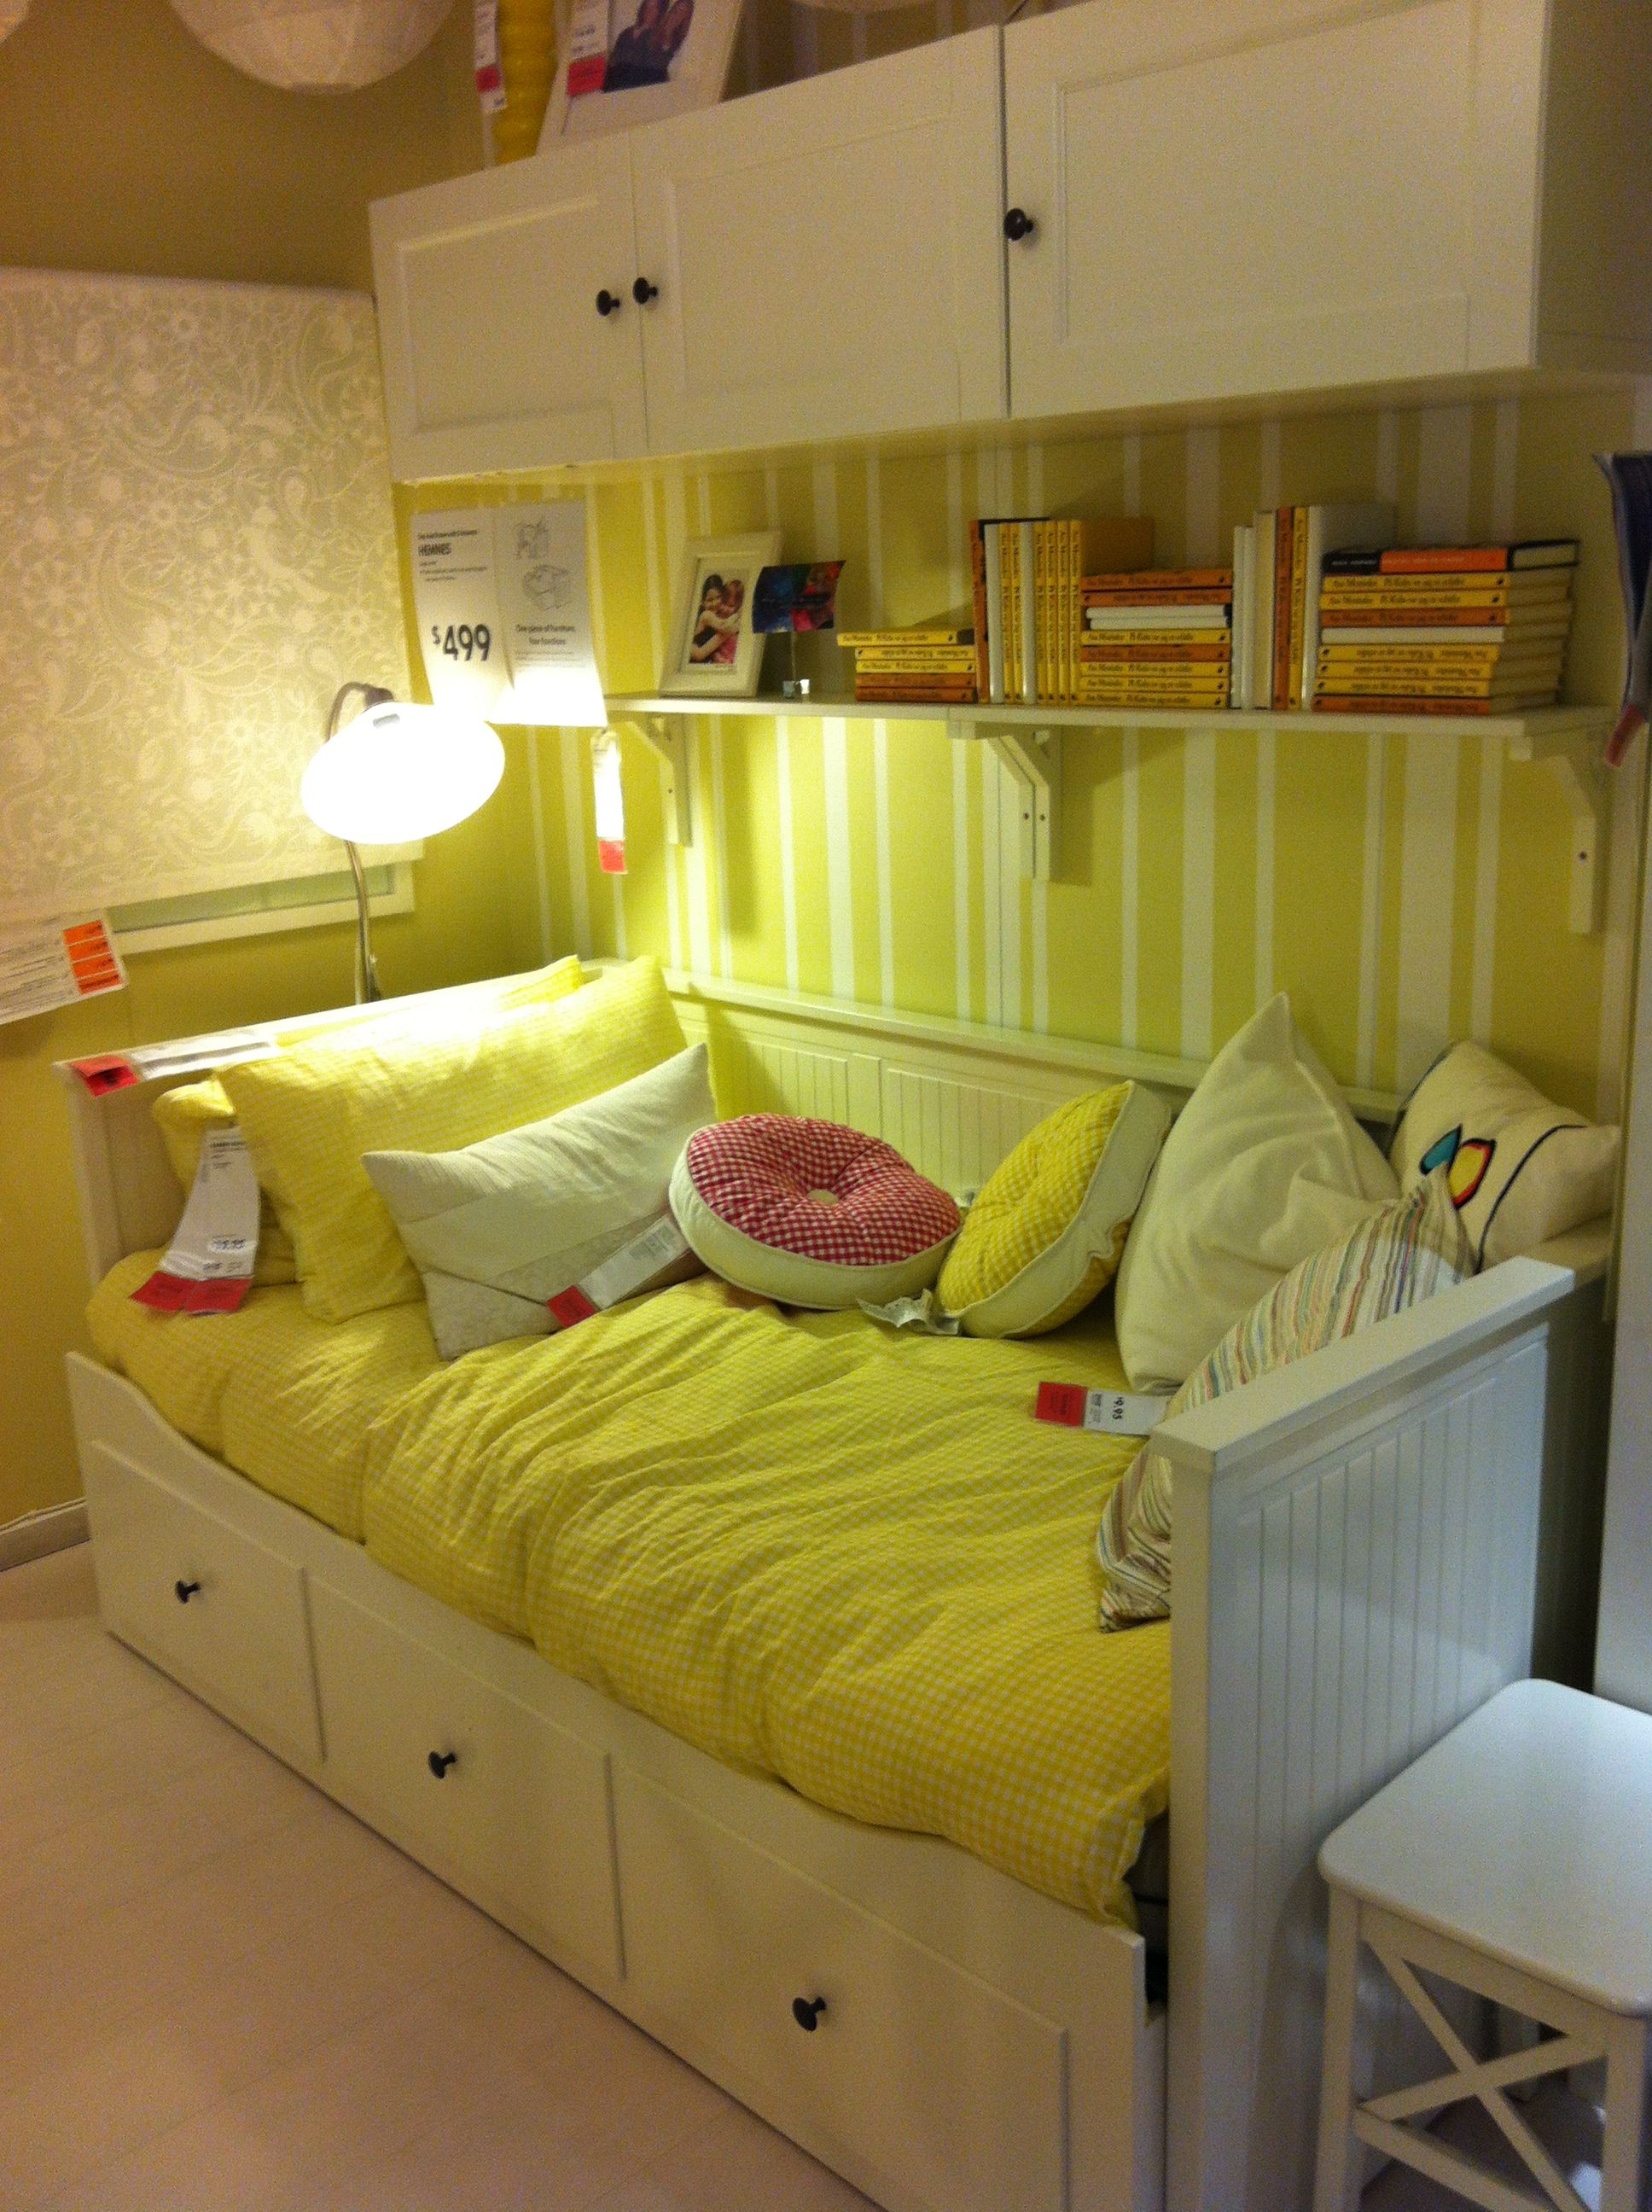 Ikea bedroom cupboards on wall I thought about this